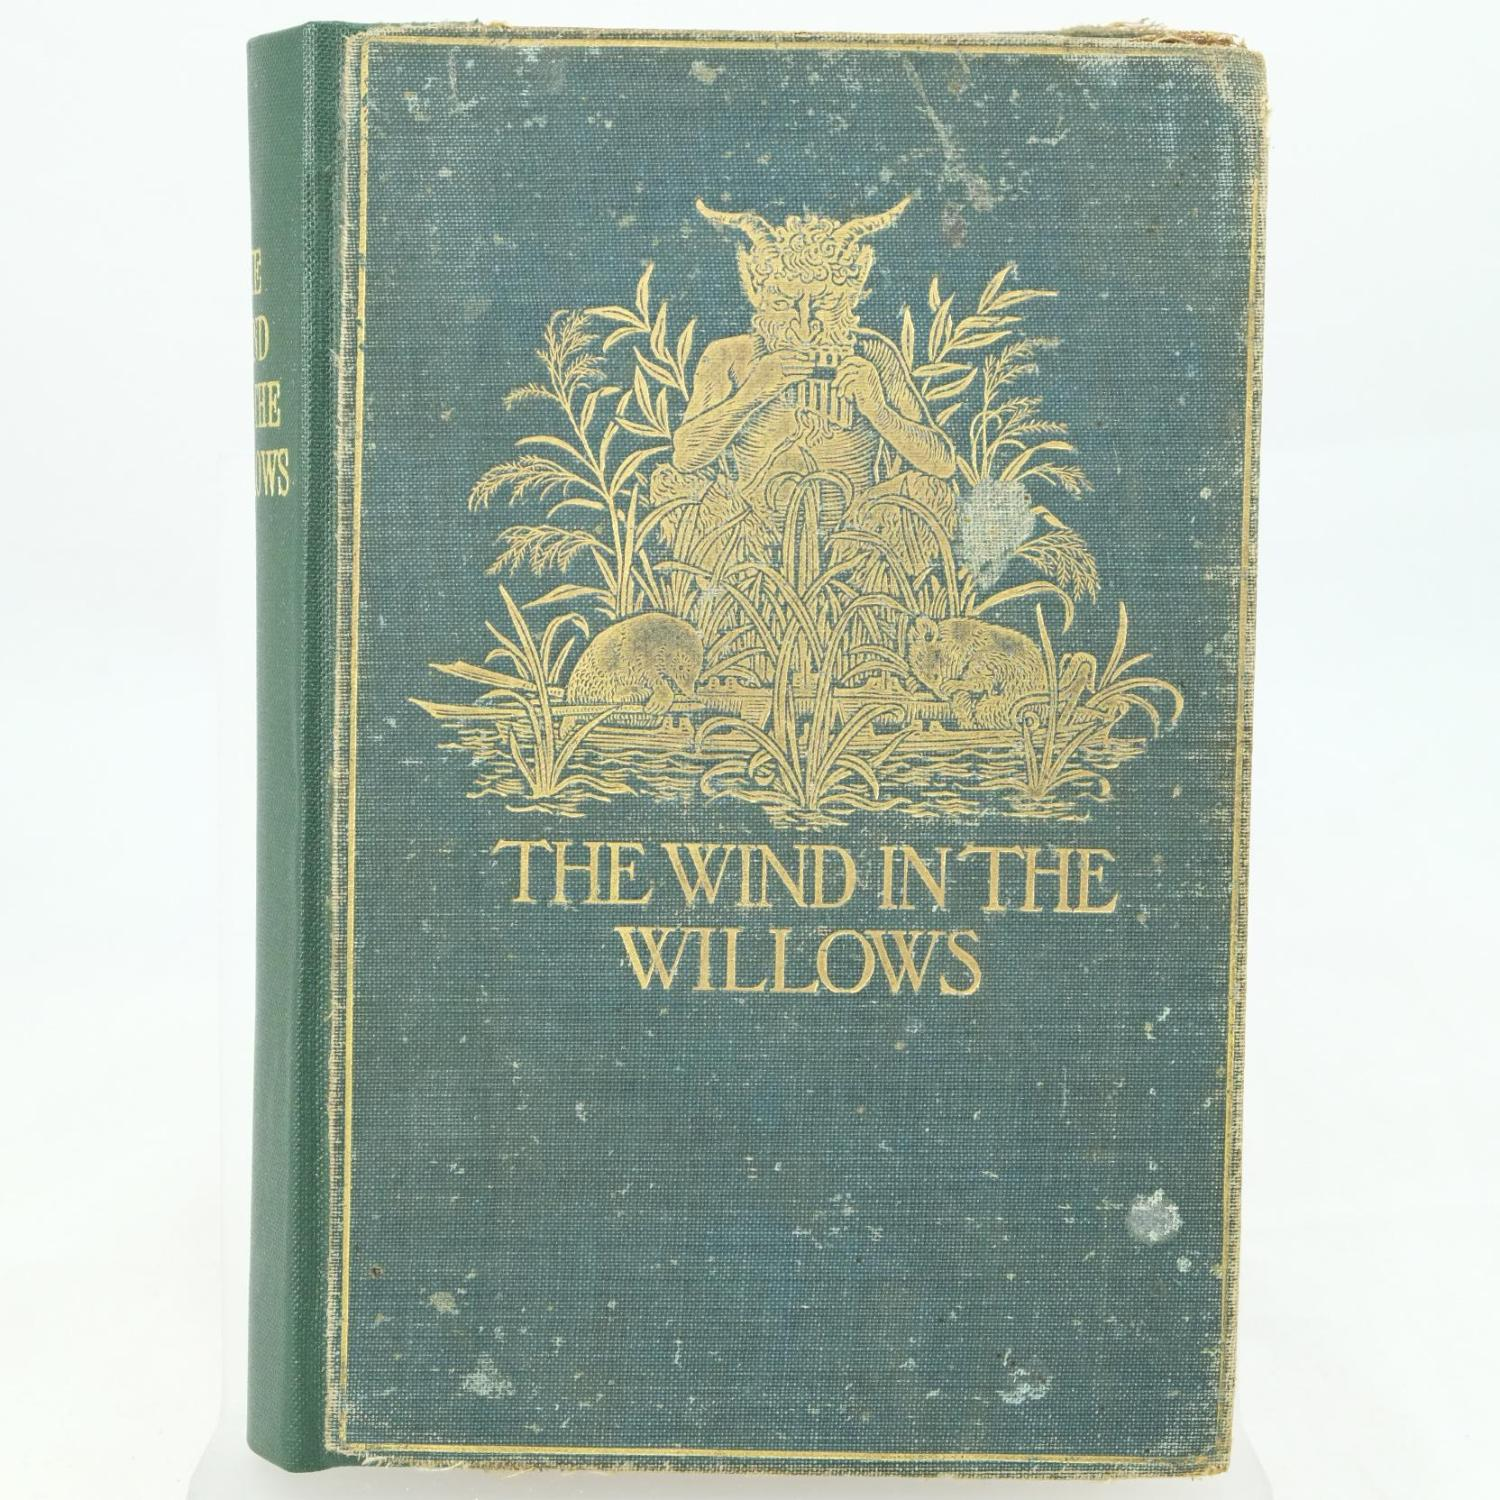 an analysis of the wind in the willows by kenneth grahame The wind in the willows [free full audiobook online listen] by kenneth grahame english audio books - best free full audiobooks online the wind in the.